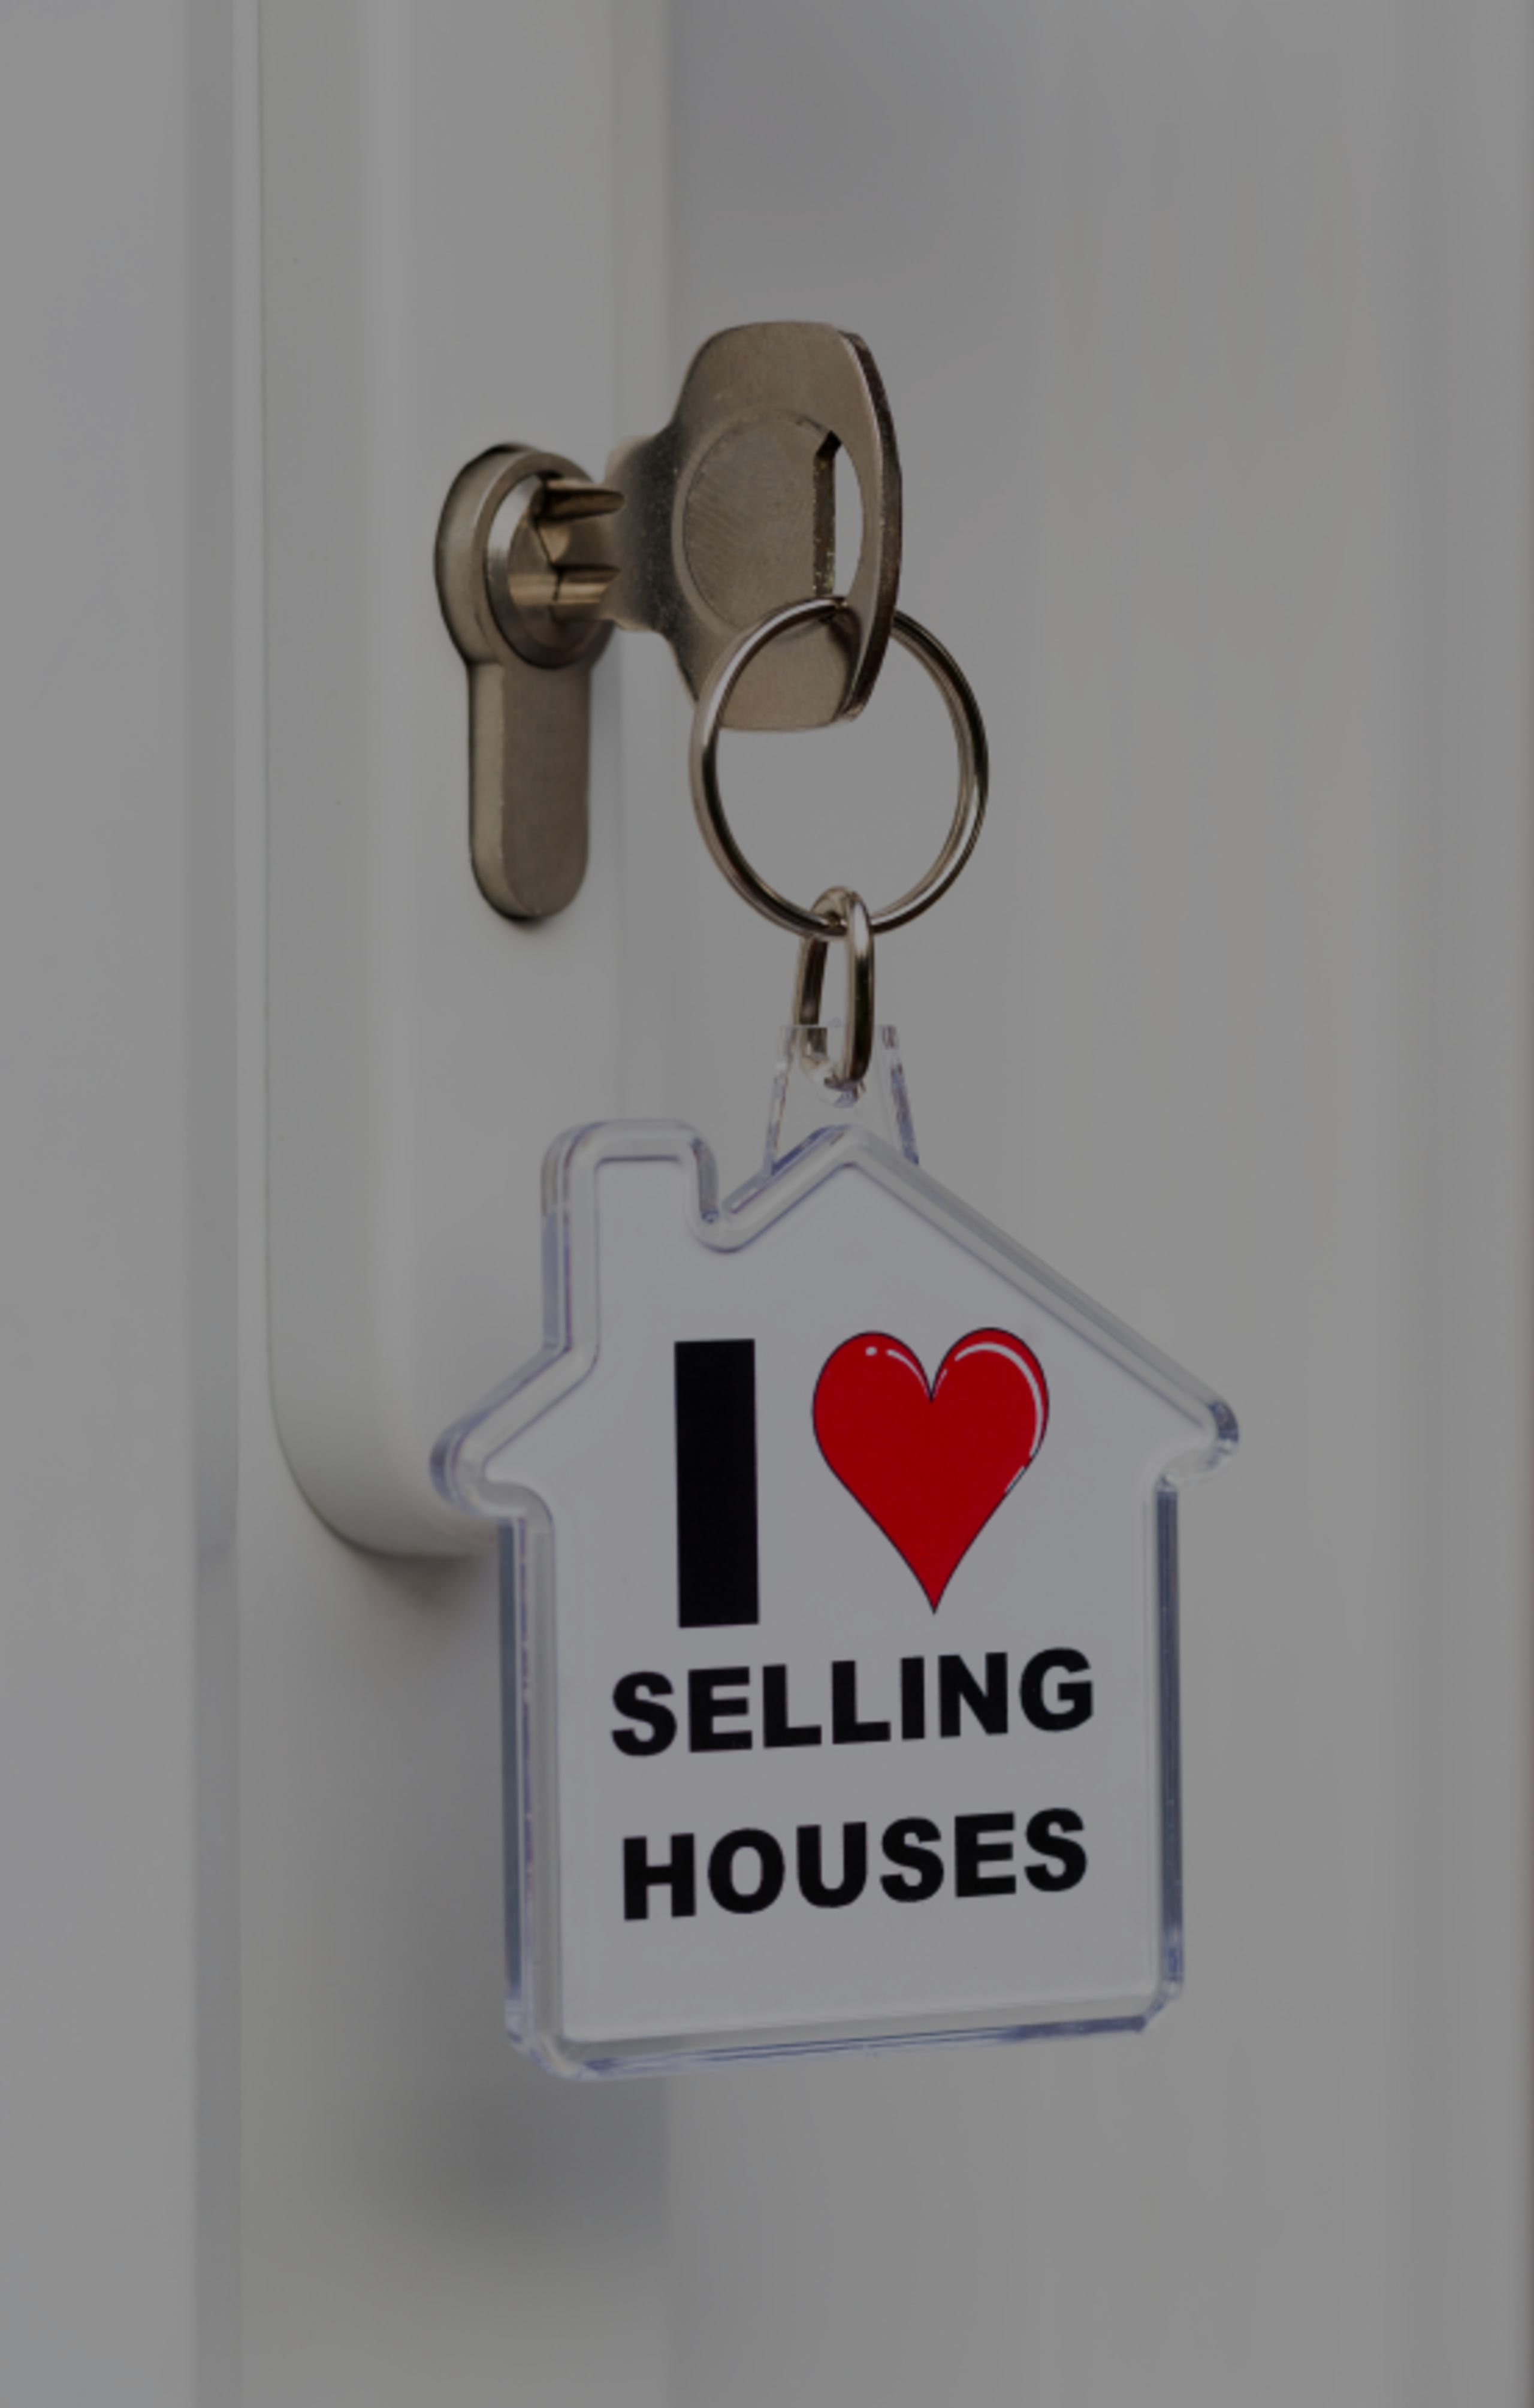 Step 1 To Selling Your Home: Find a Realtor